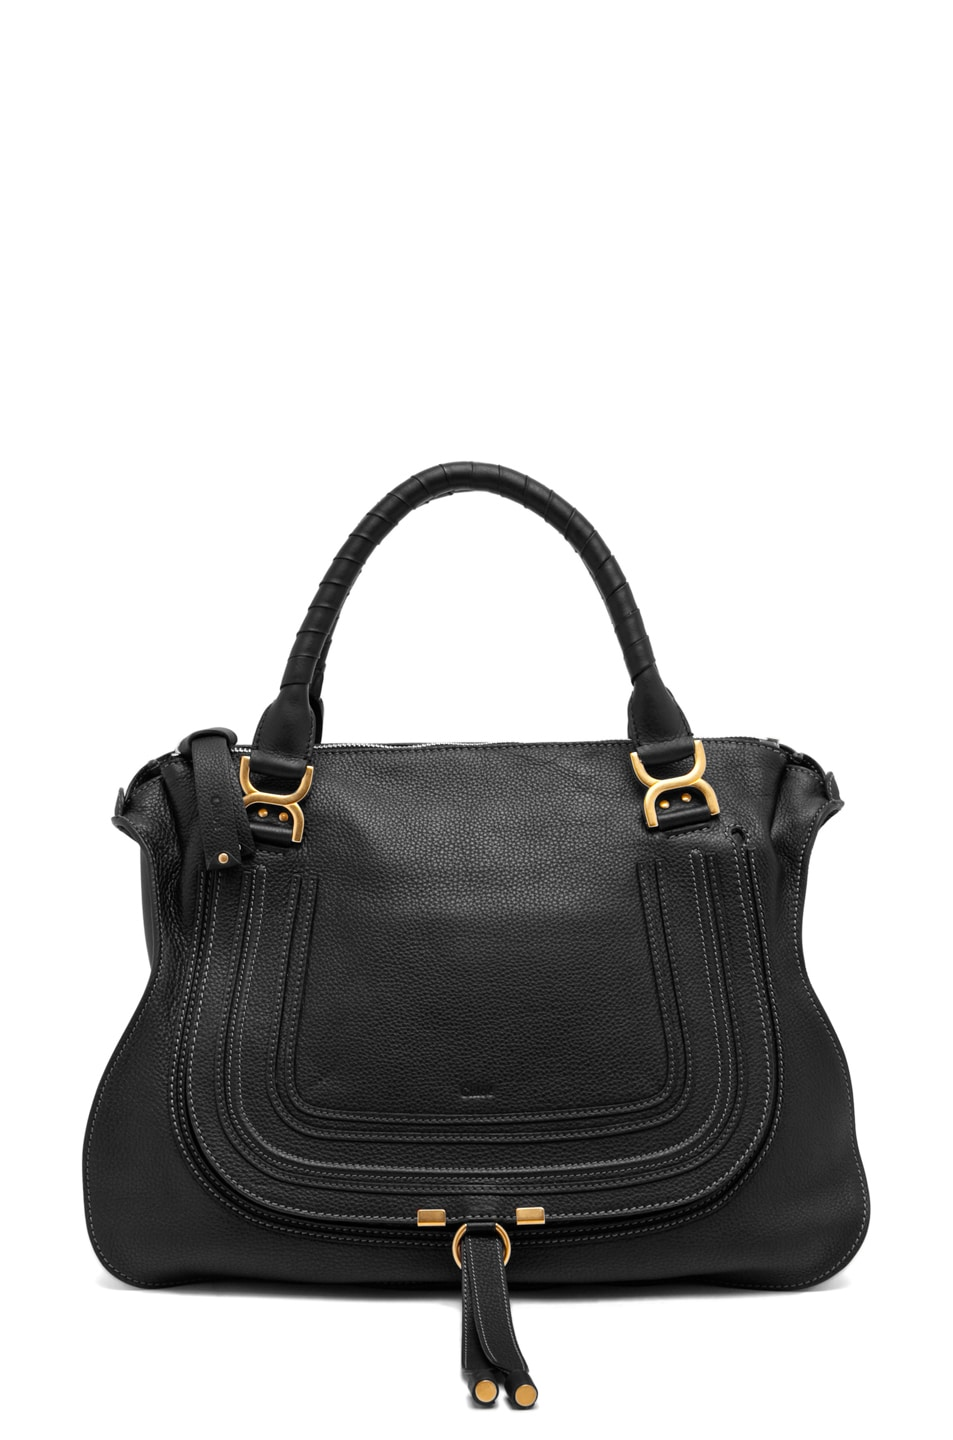 Image 1 of Chloe Large Marcie Shoulder Bag in Black